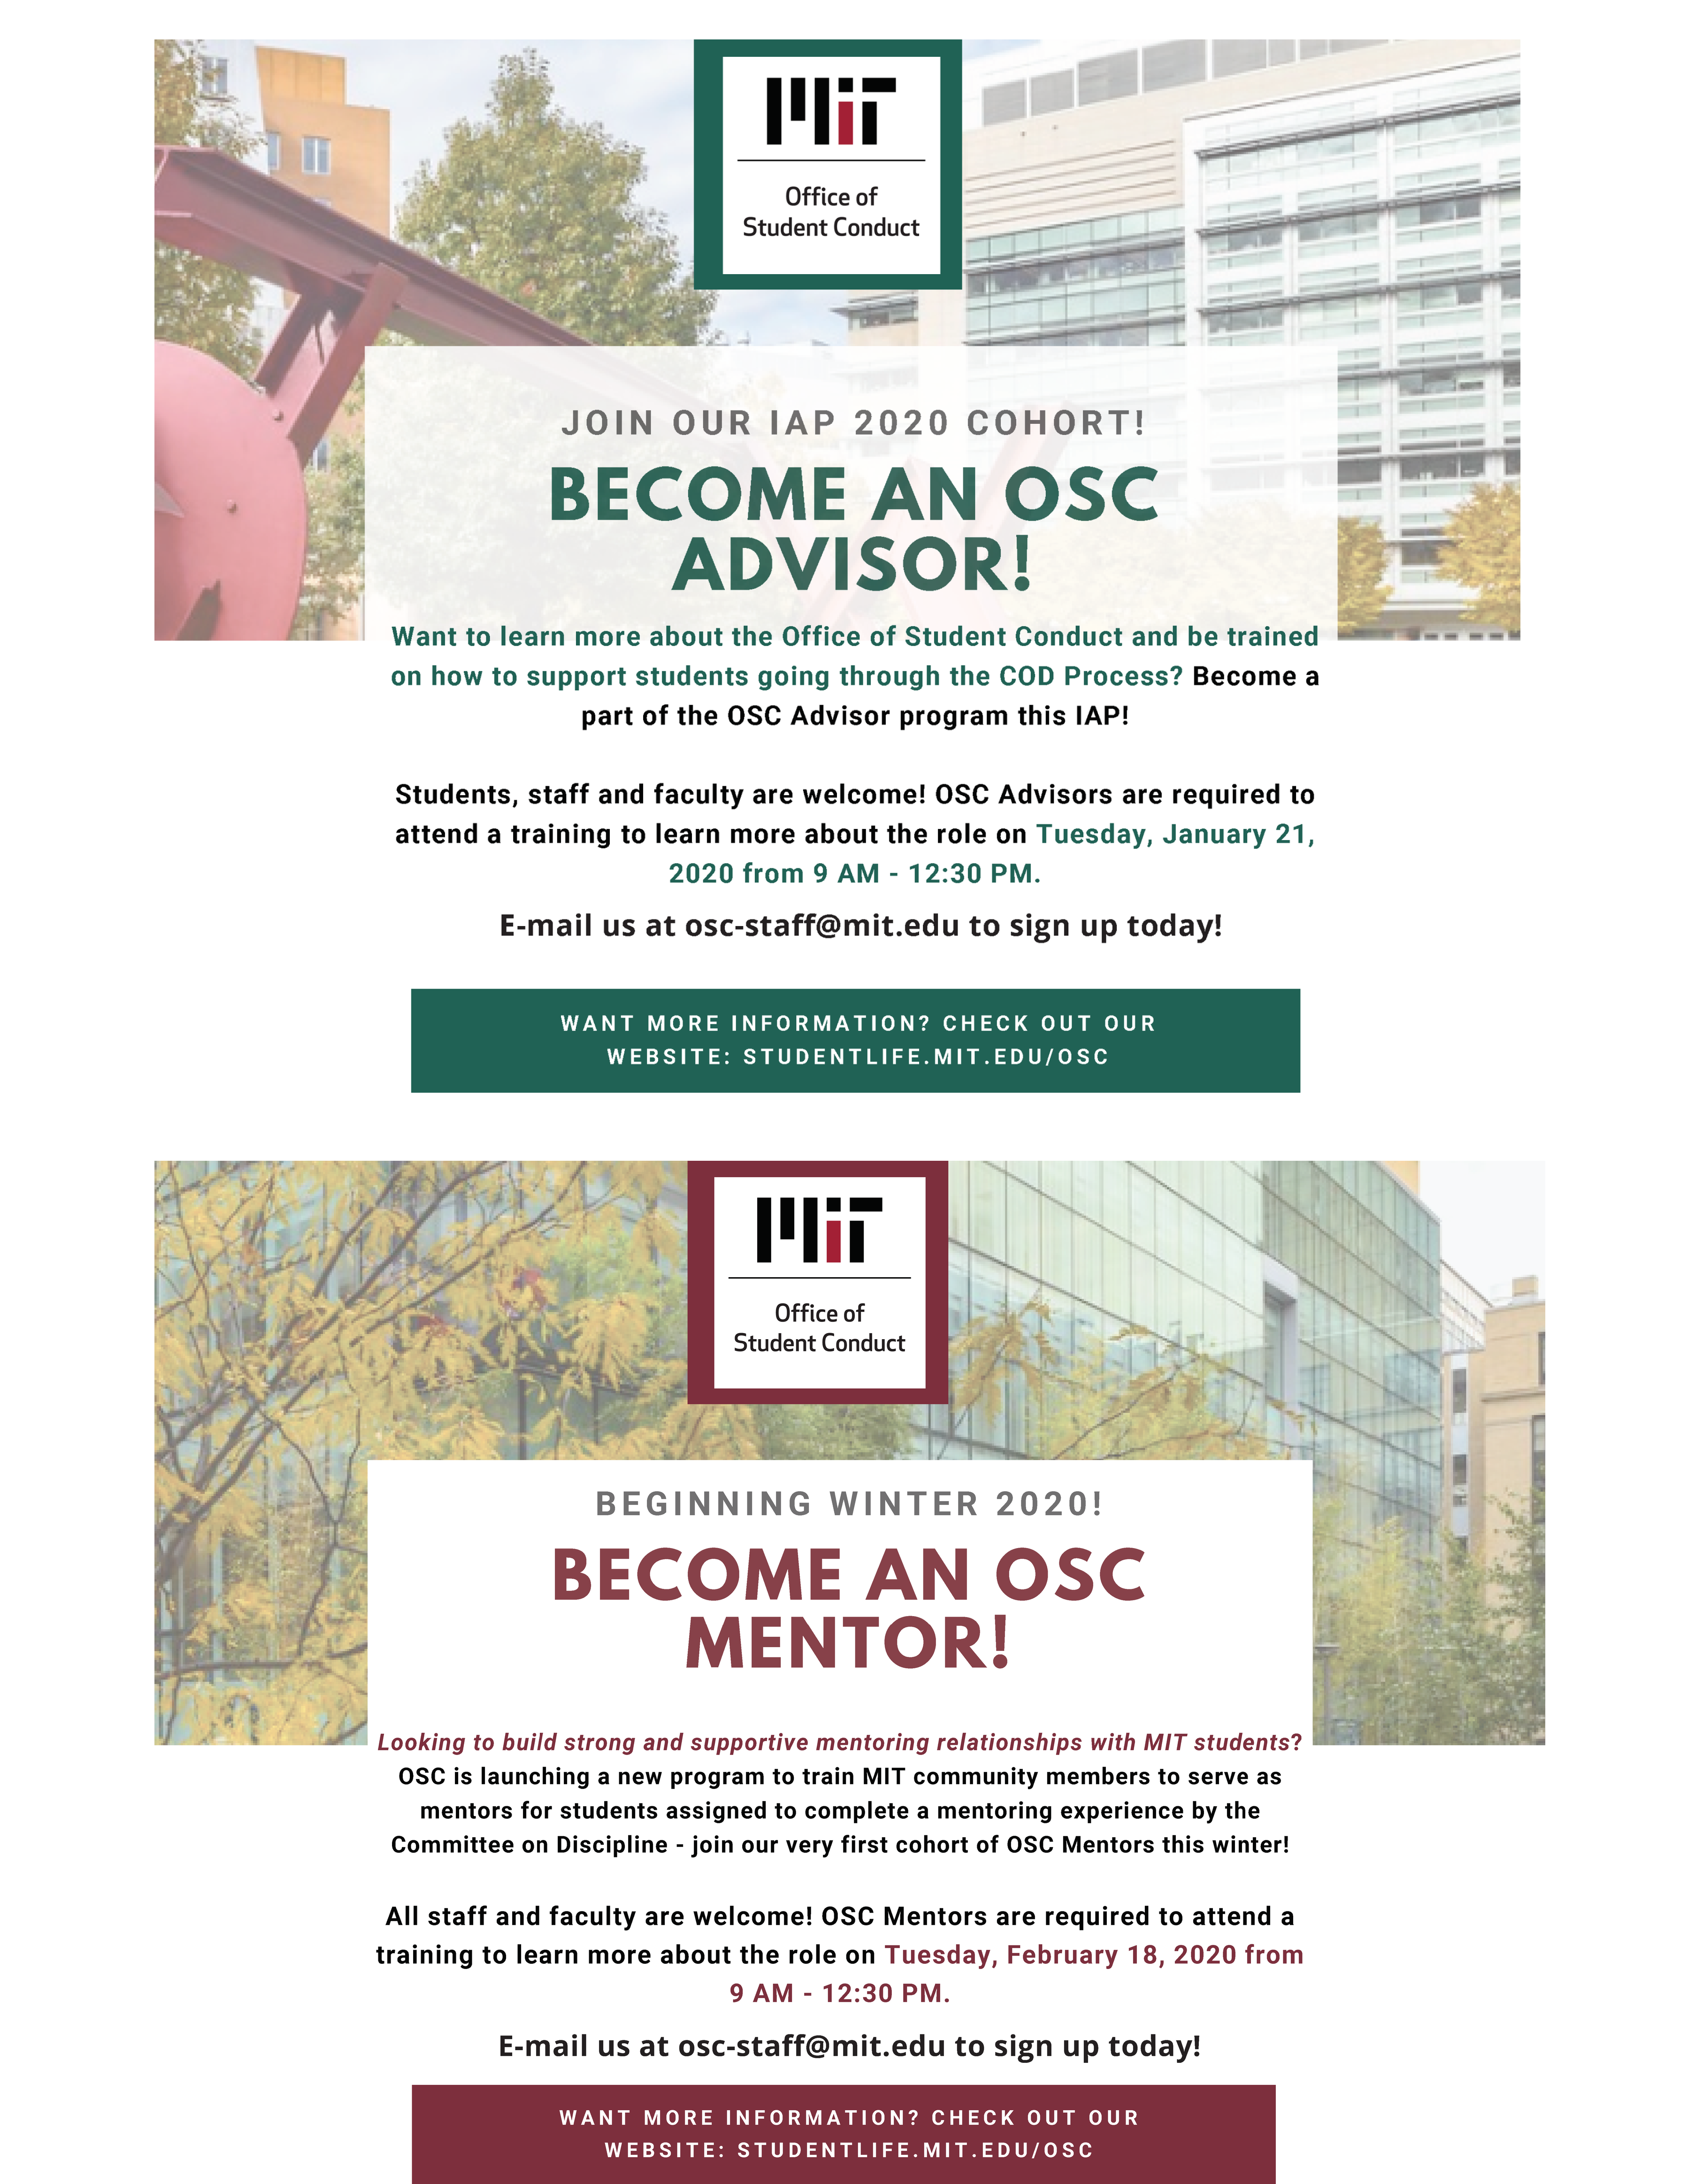 Flyer announcing upcoming OSC Advisor and OSC Mentor training sessions in January and February 2020. Email osc-staff@mit.edu for more details.